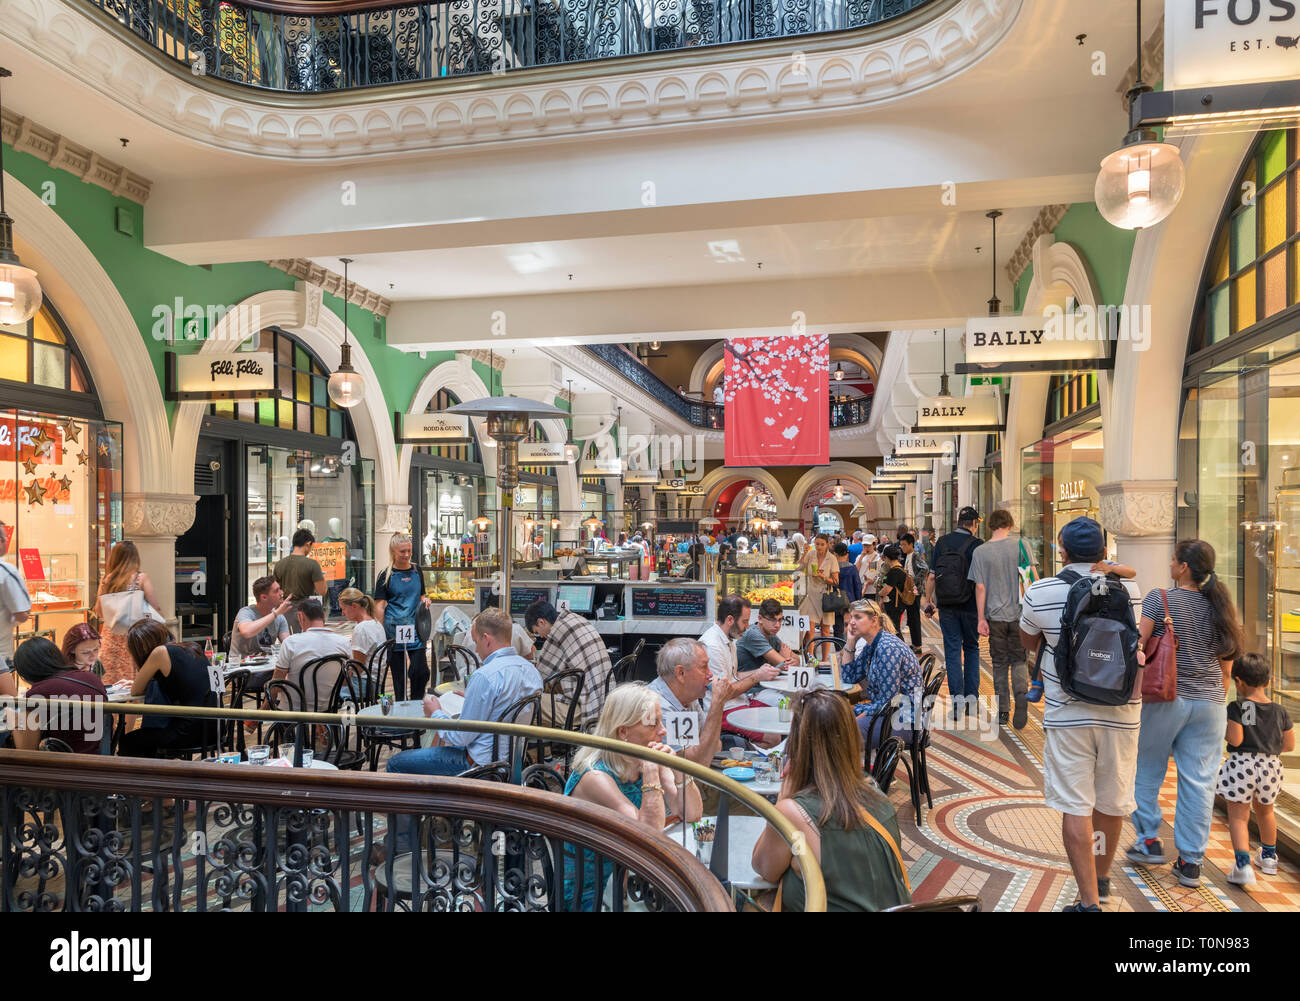 Cafe in the Queen Victoria Building (QVB) arcade, Central Business District, Sydney, Australia - Stock Image